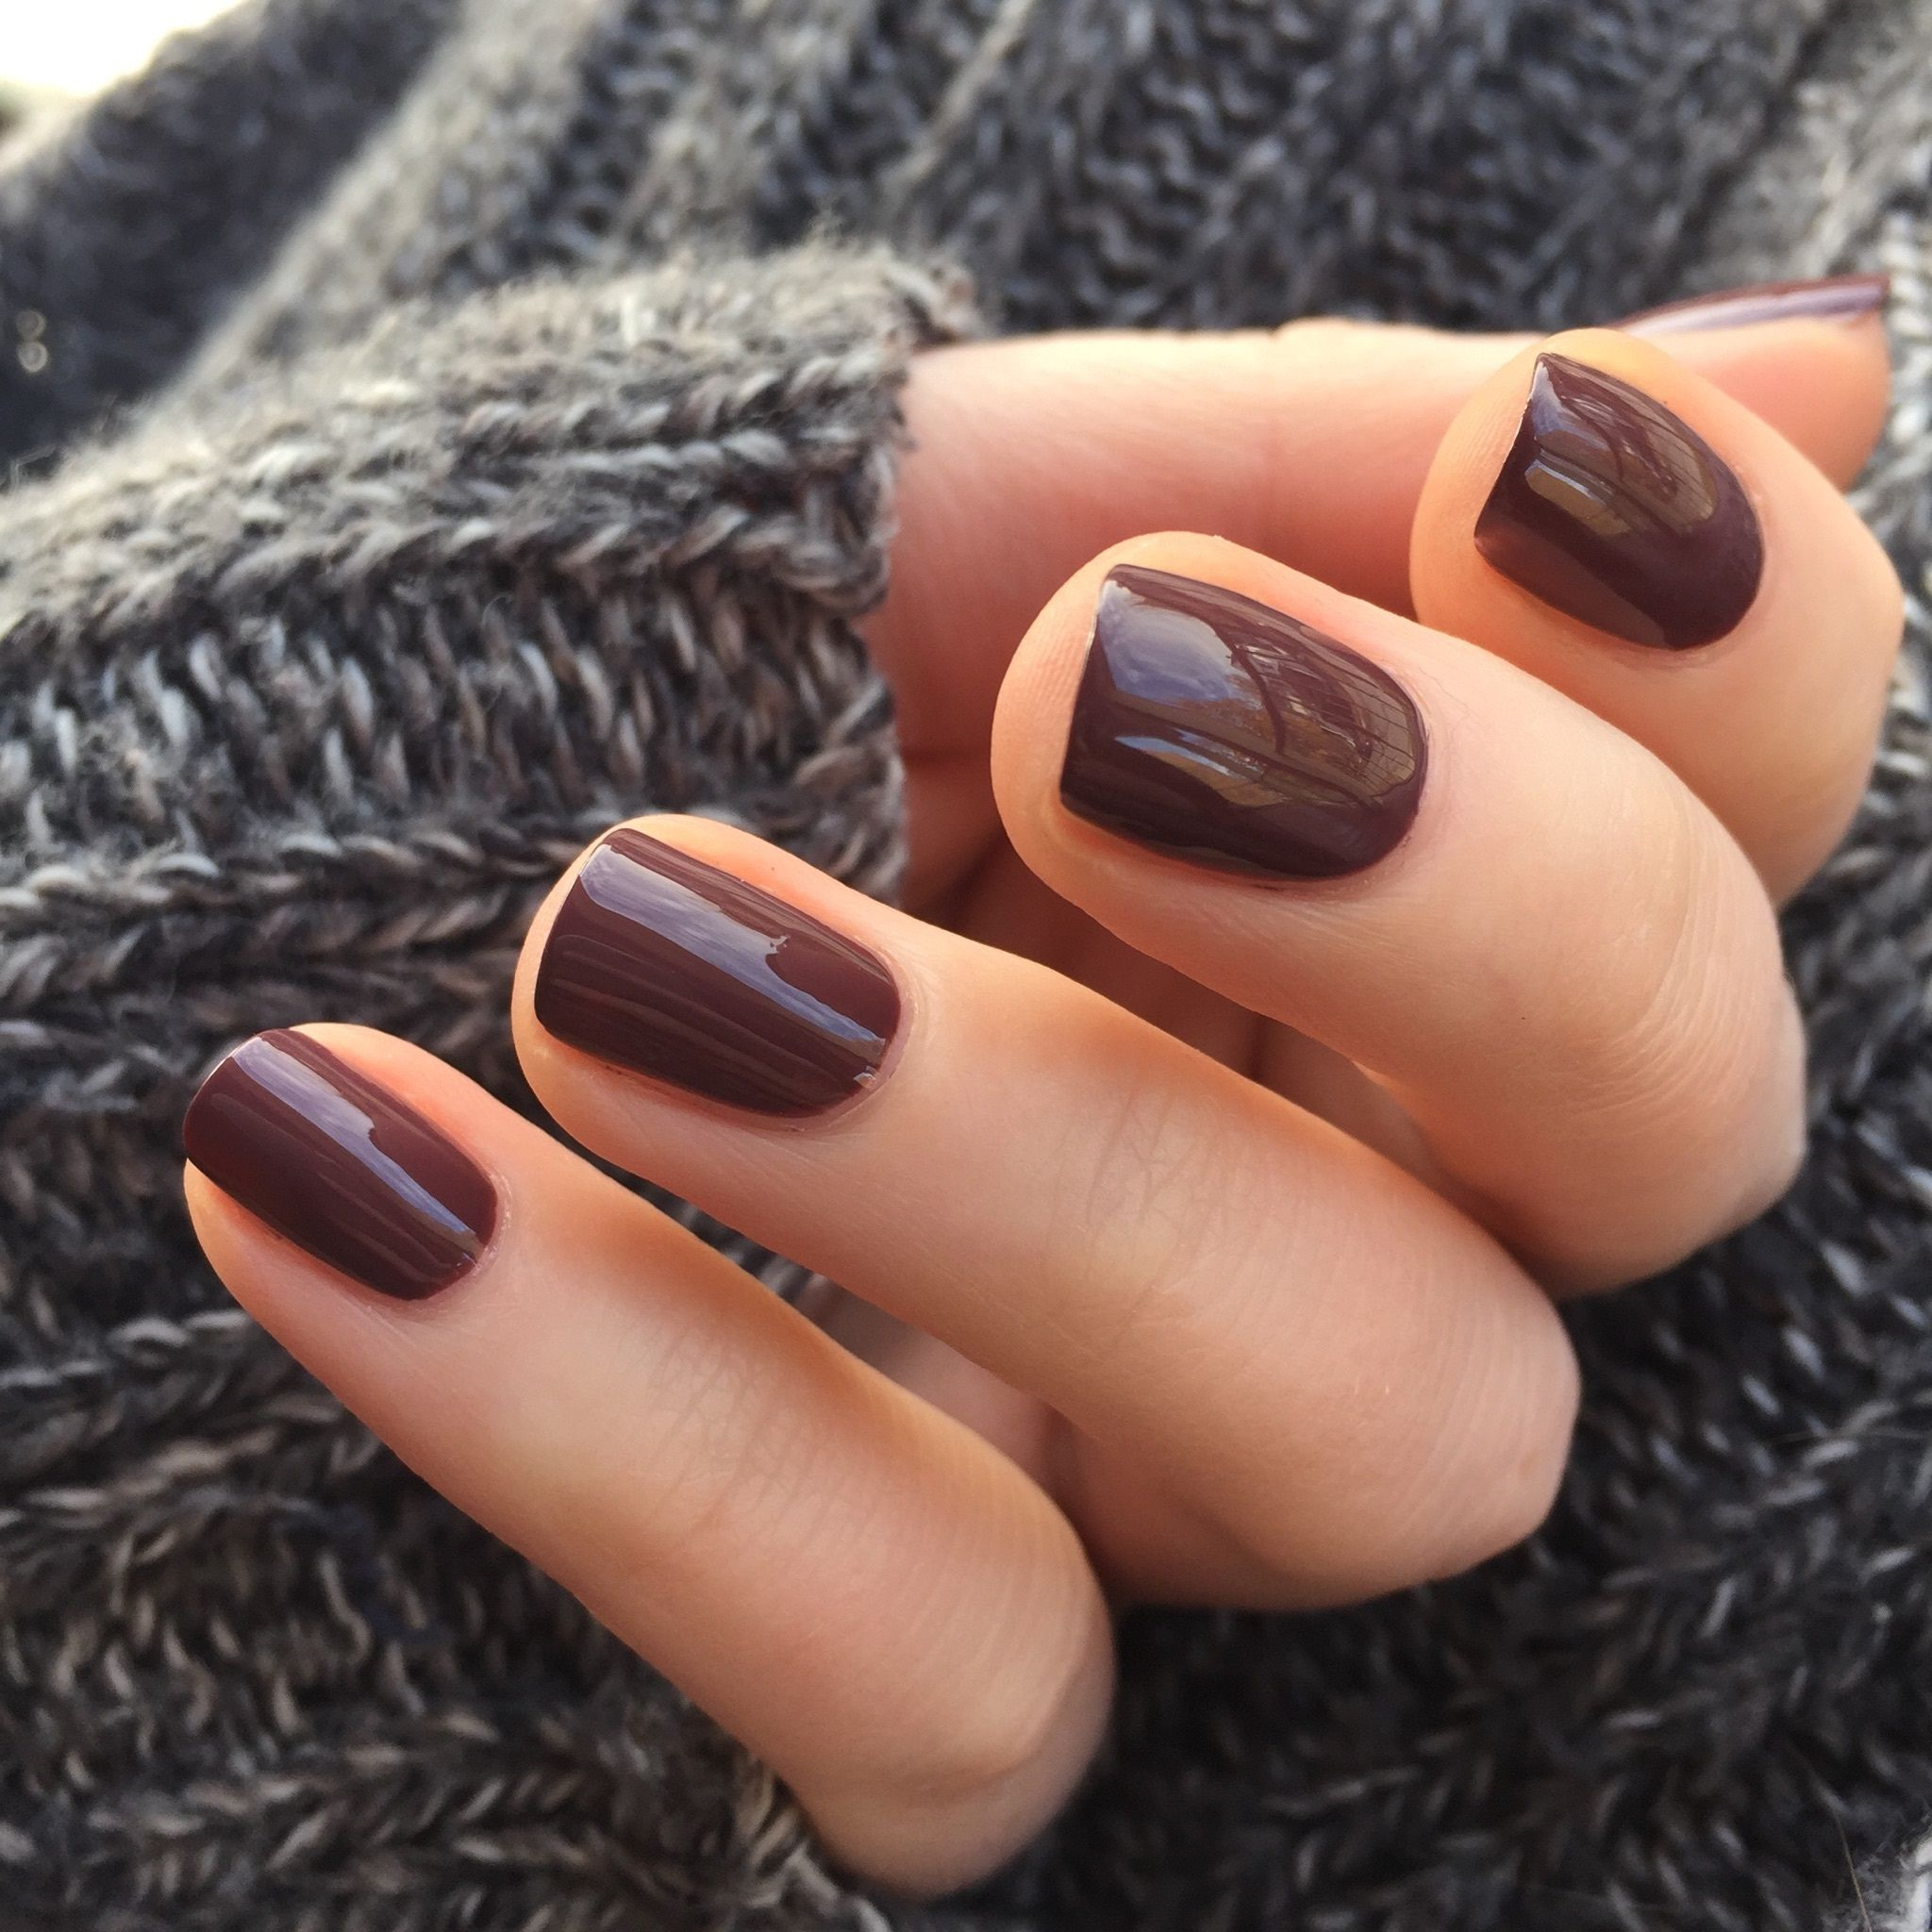 Zoya Marnie Marsala Nail Polish | tough as nails | Pinterest ...